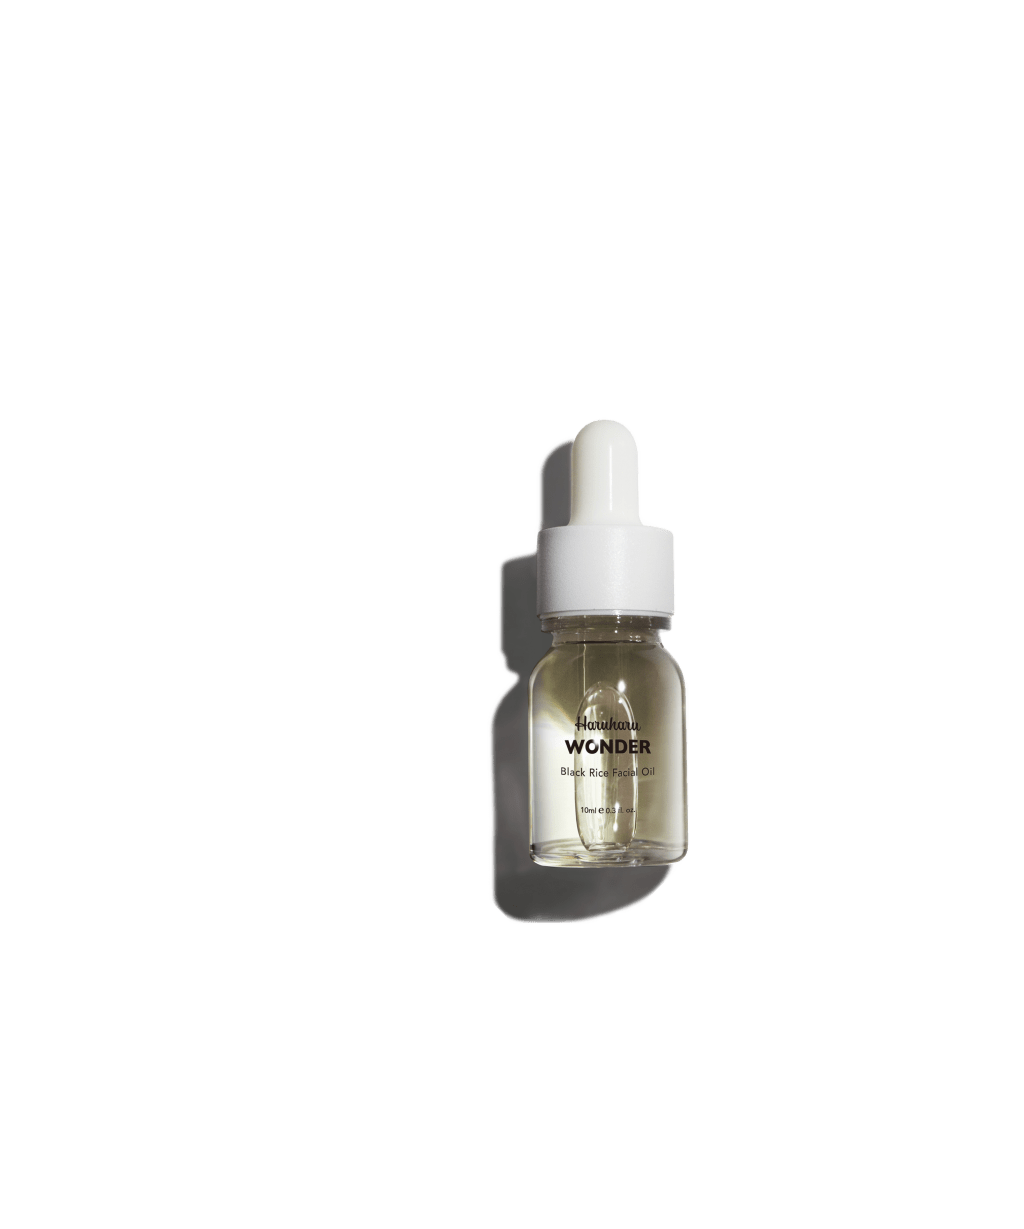 WONDER Black Rice Facial Oil 10ml